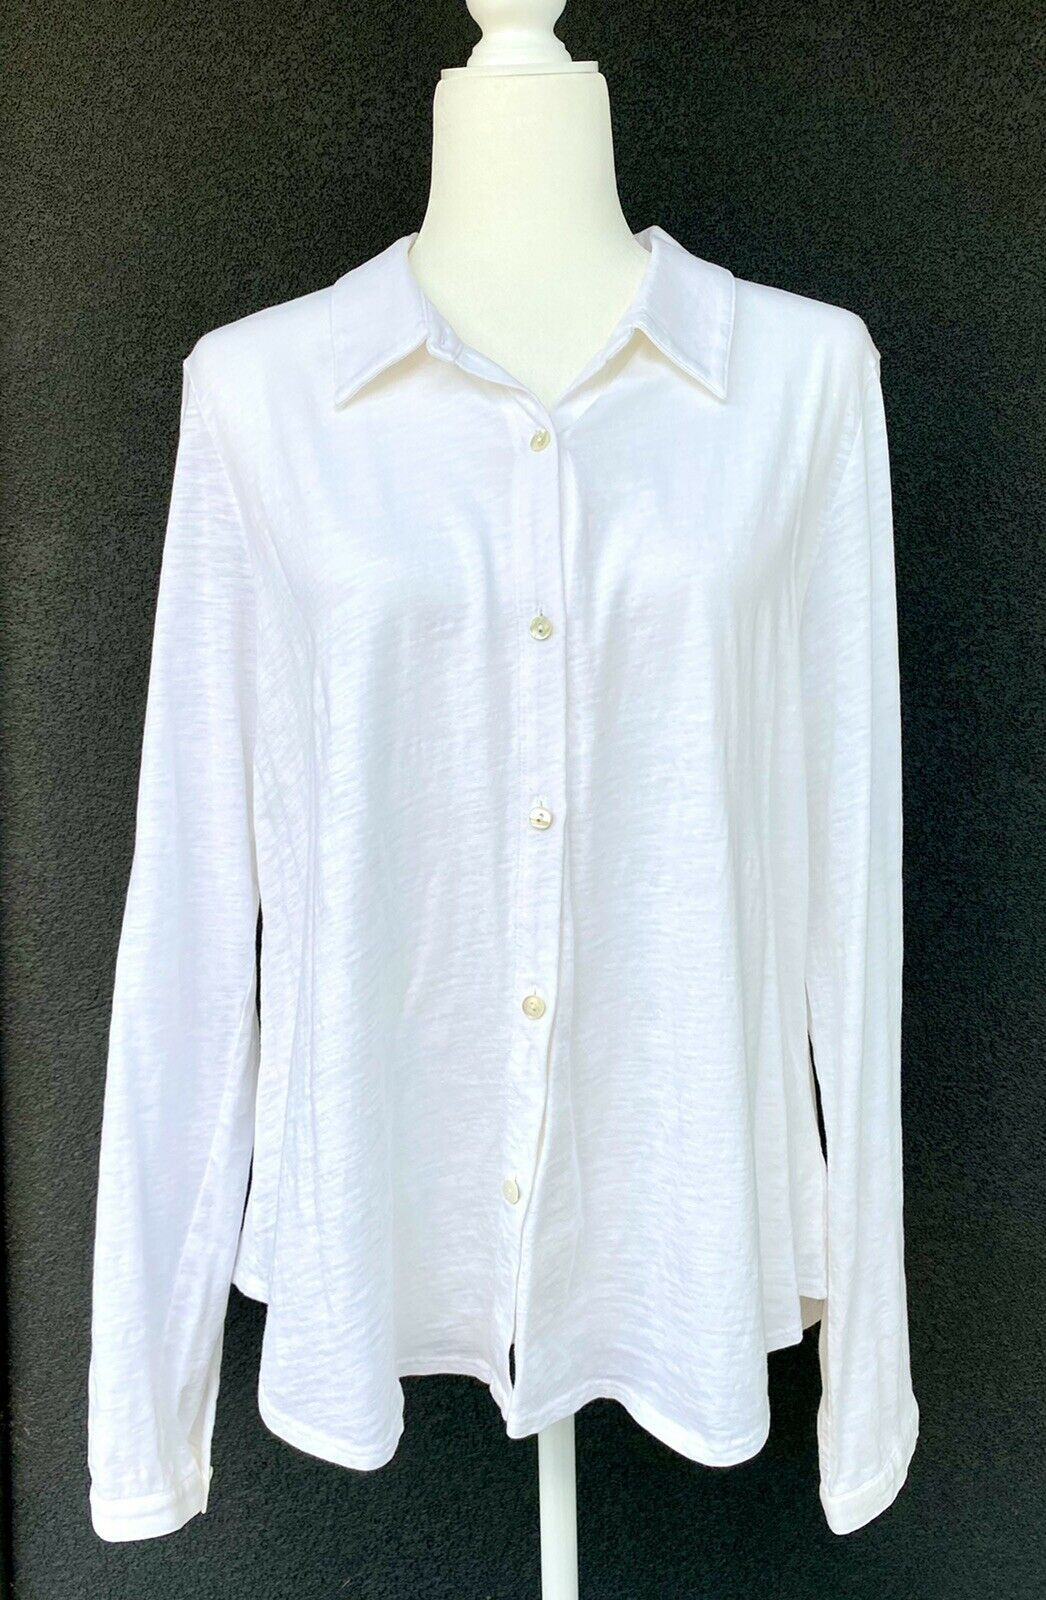 EILEEN FISHER Organic Cotton White Knit Button Up Shirt Blouse Womens Size Large